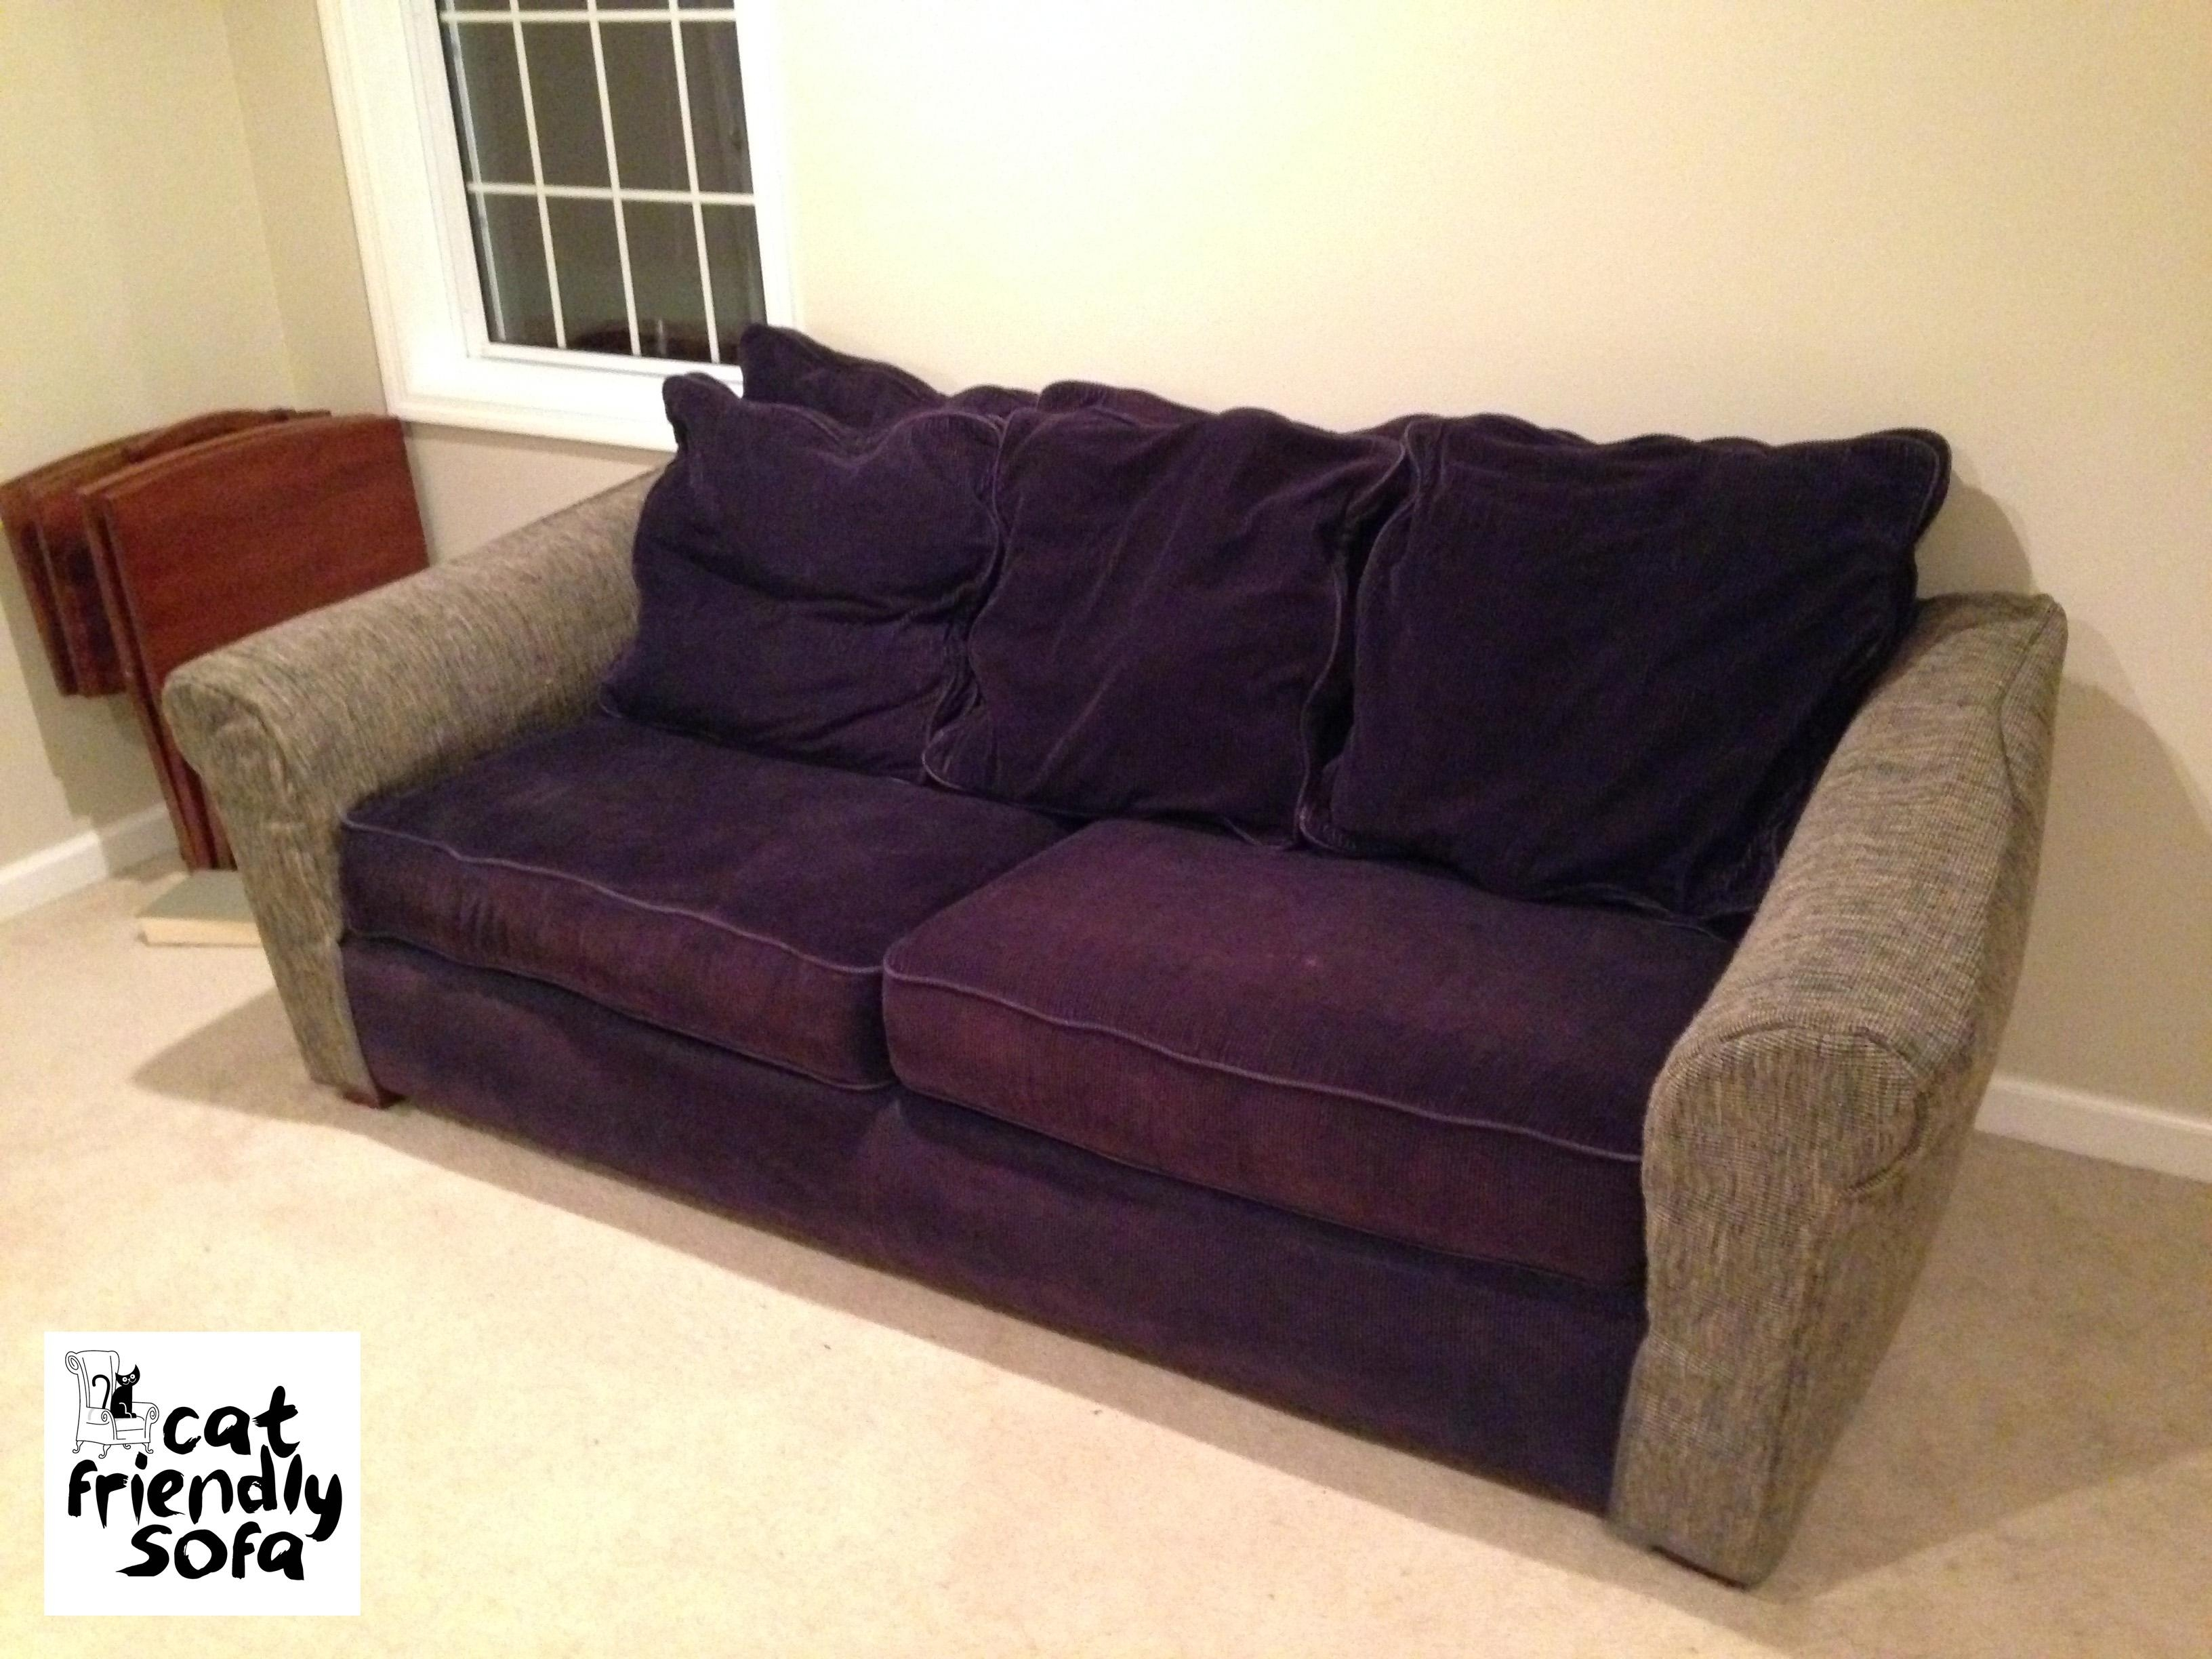 Tailored Slipcovers – Cat Friendly Sofa | Cat Friendly Sofa In Pet Proof Sofa Covers (View 4 of 20)